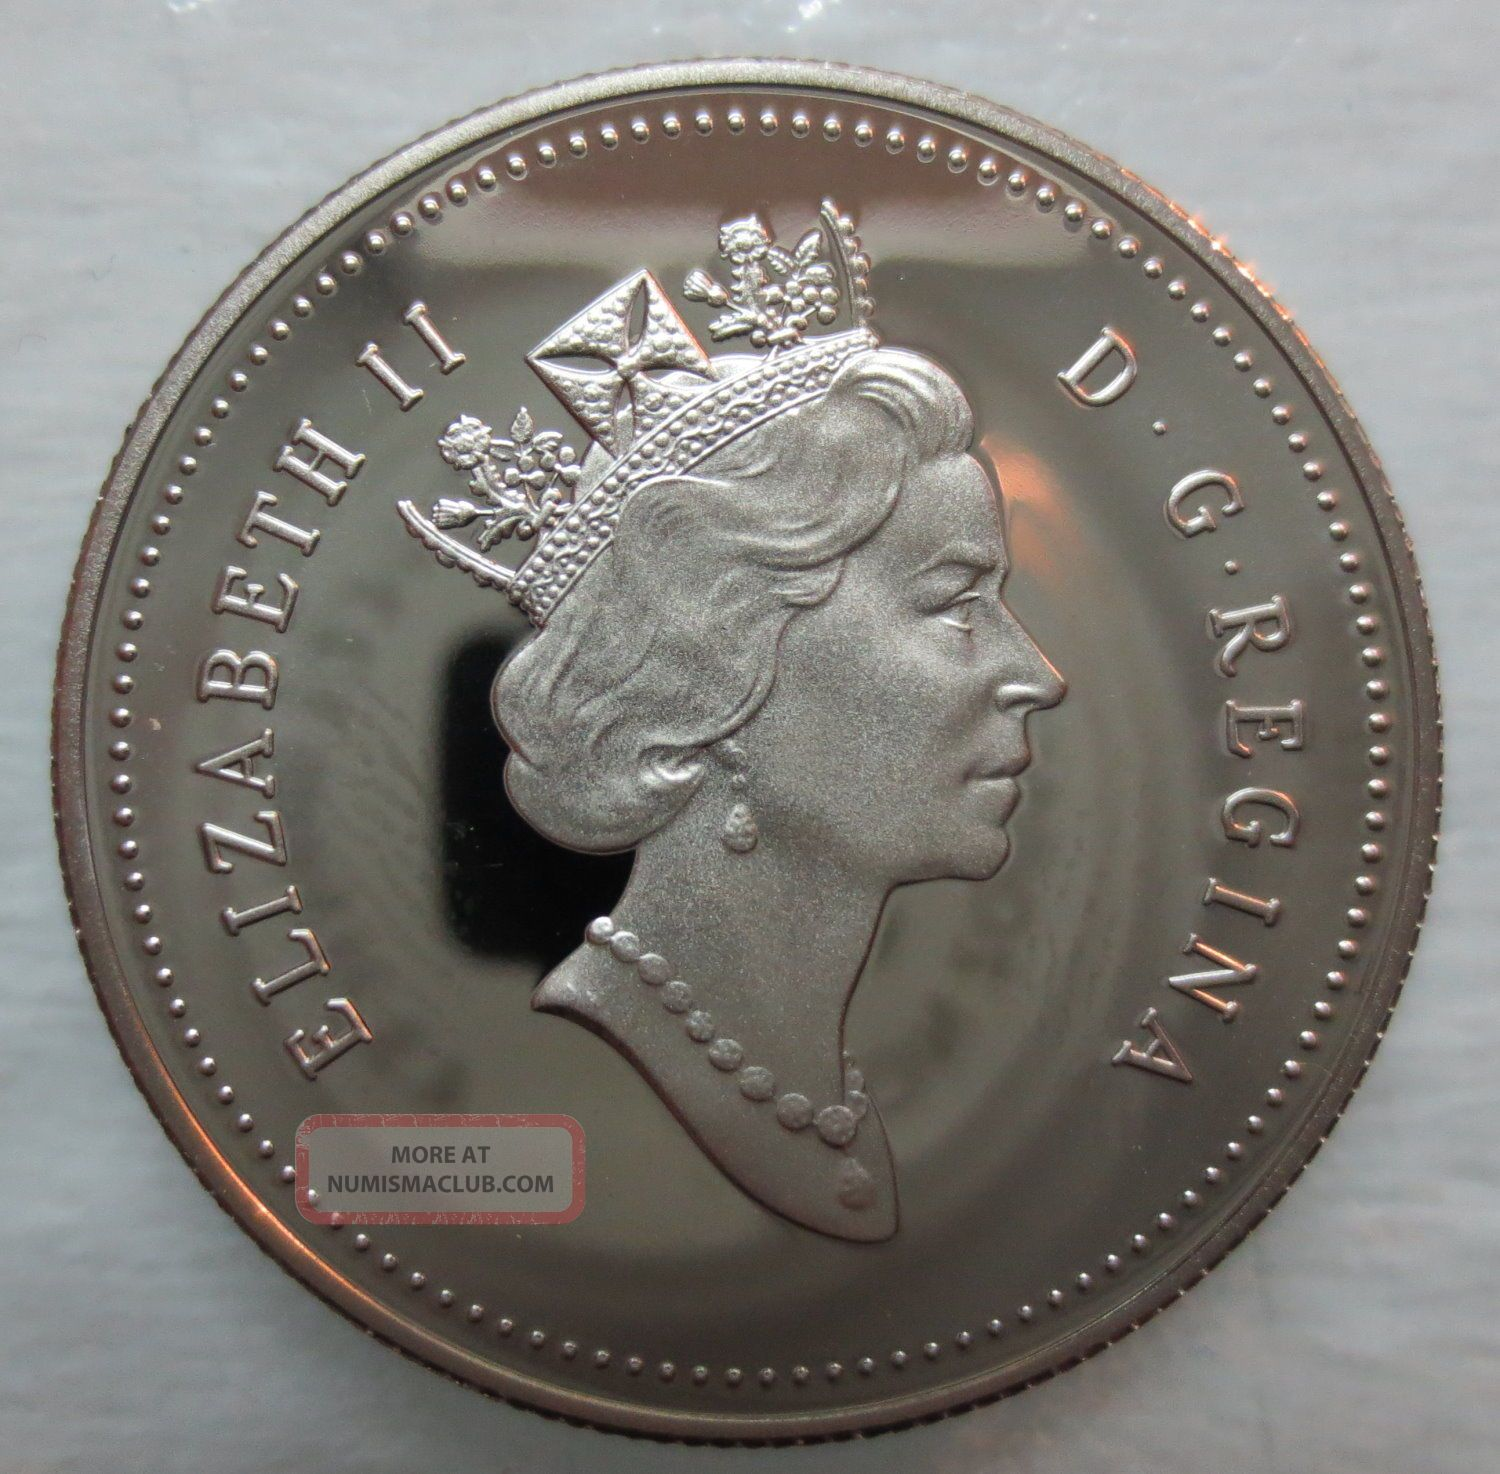 1992 50 cent coin